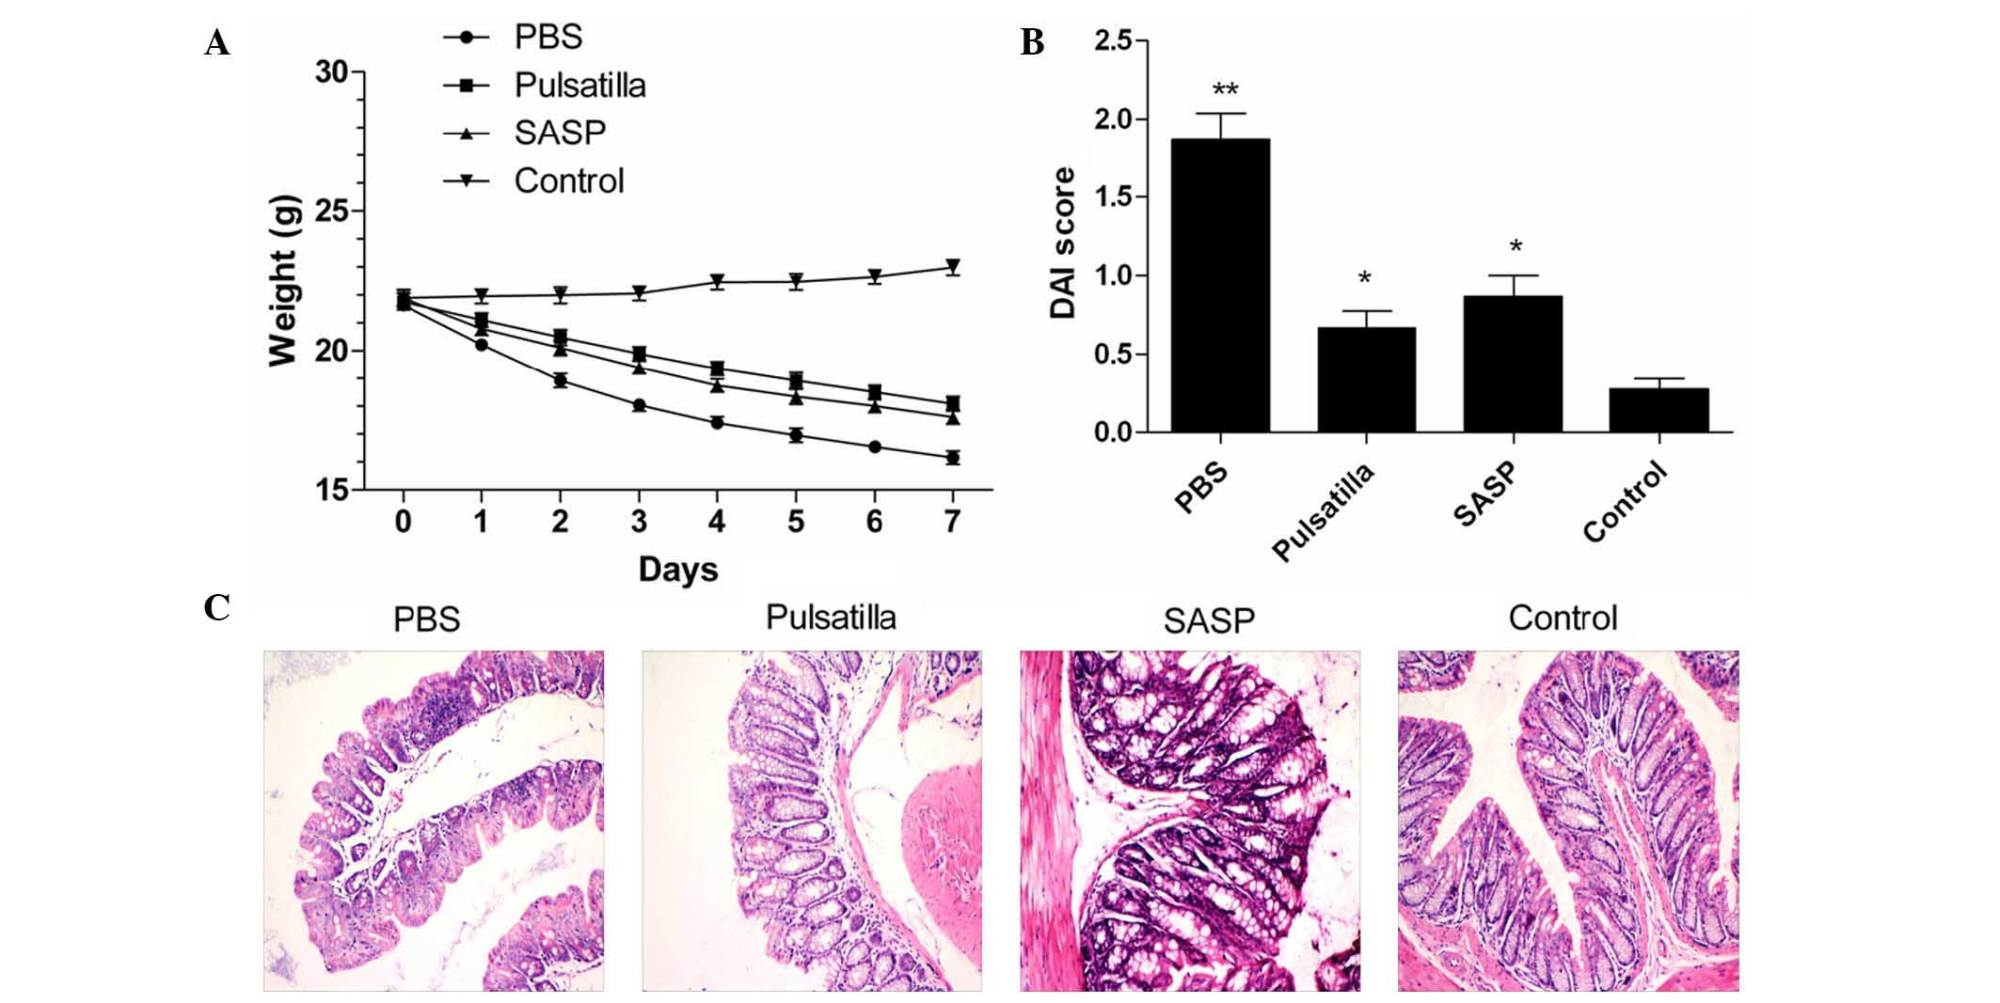 hight resolution of modified pulsatilla decoction treatment attenuates the severity of oxazolone induced colitis in mice a weight loss of oxazolone induced colitis mice